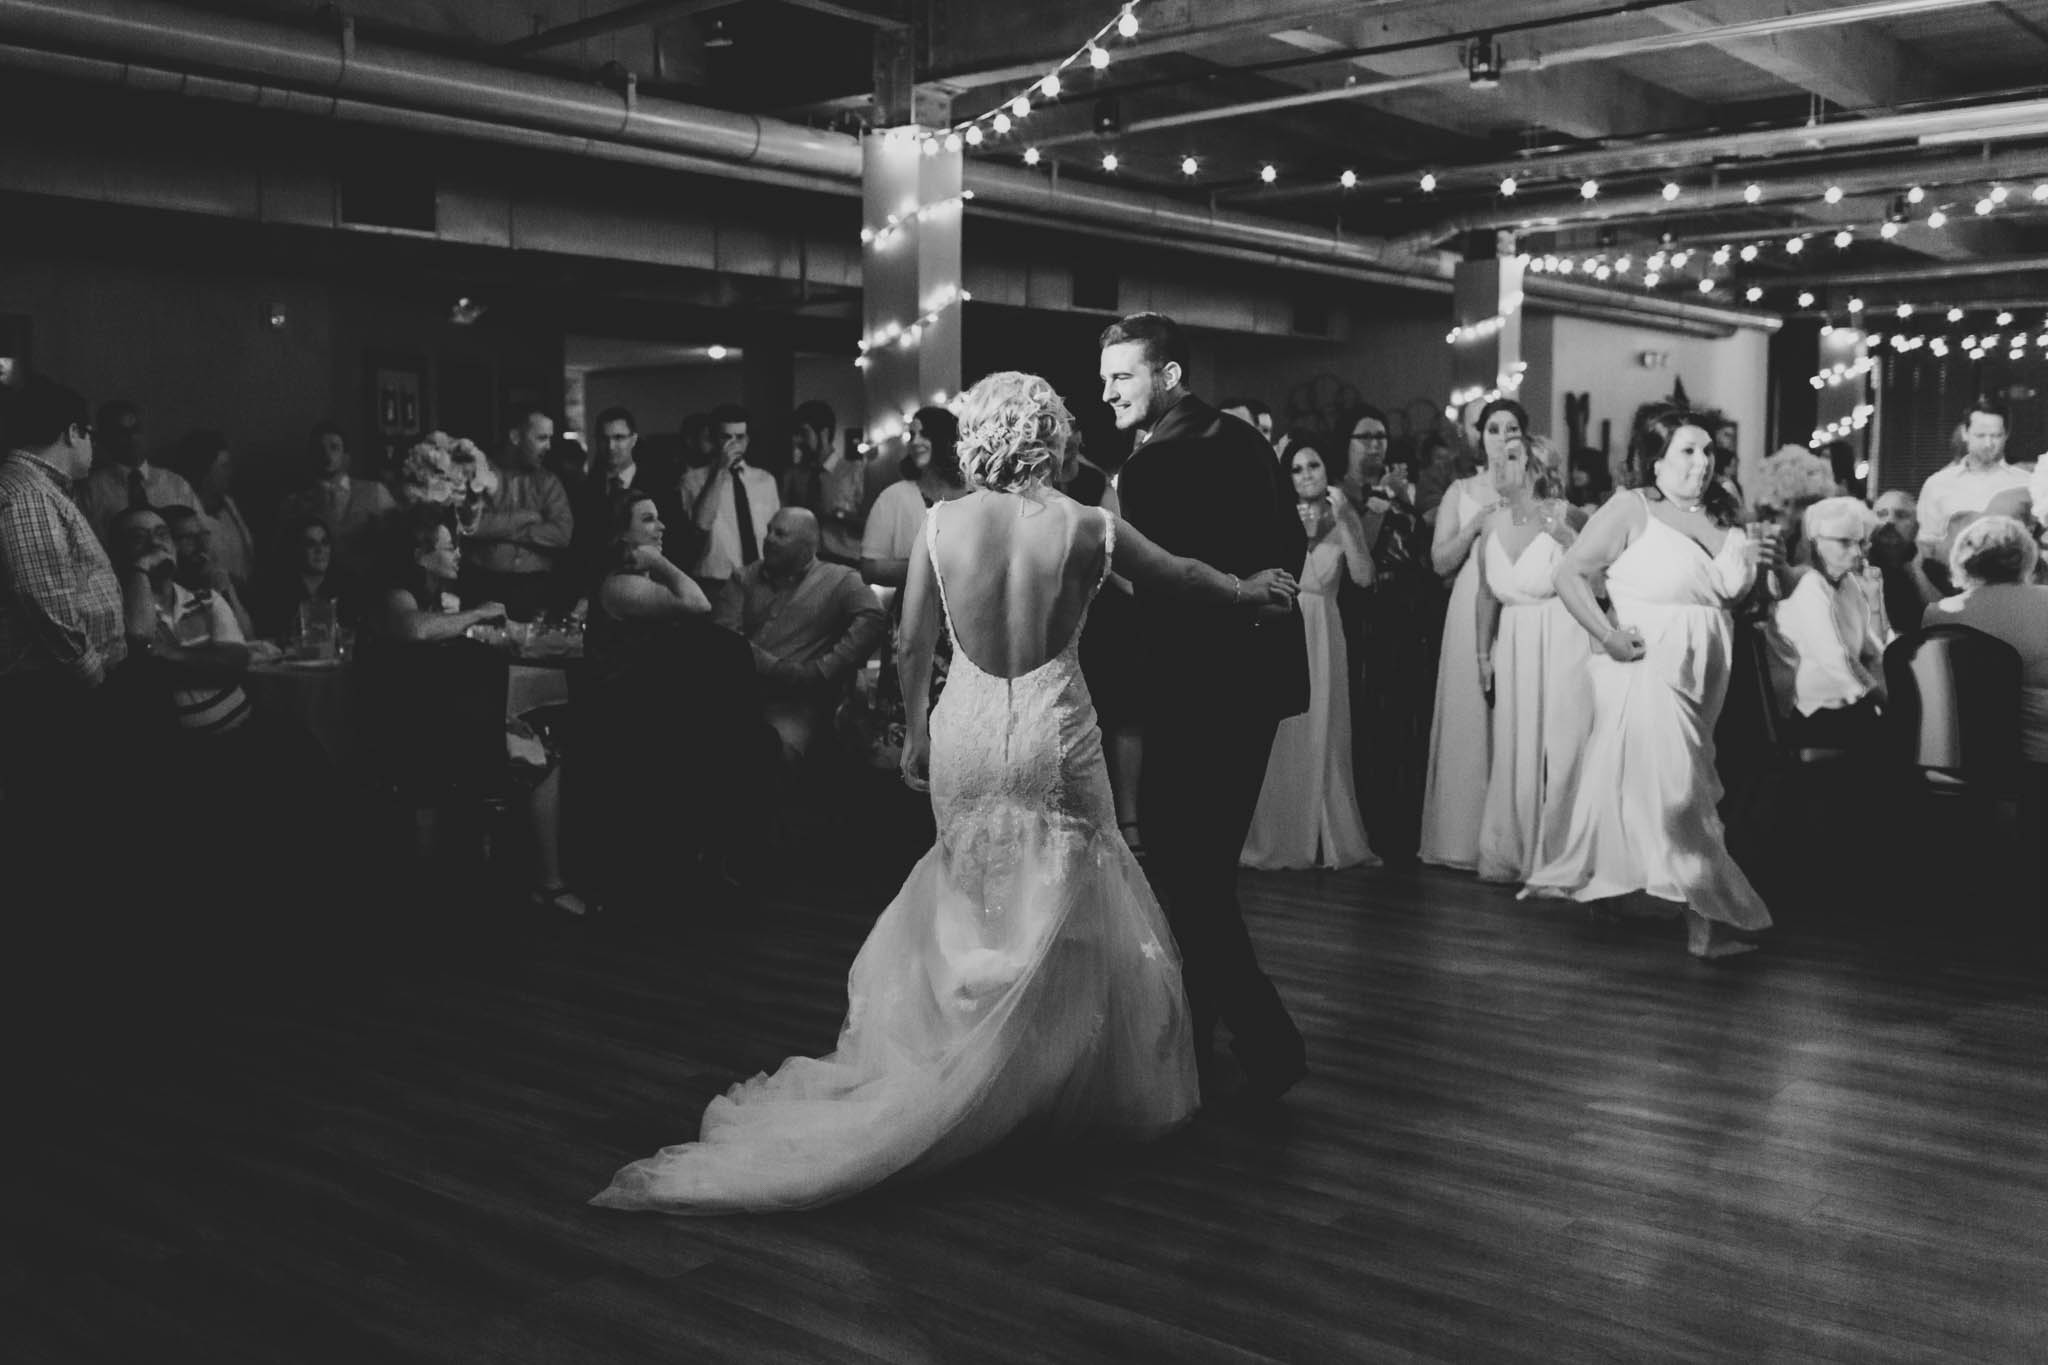 Jillian VanZytveld Photography - Grand Rapids Lifestyle Wedding Photography - 195.jpg